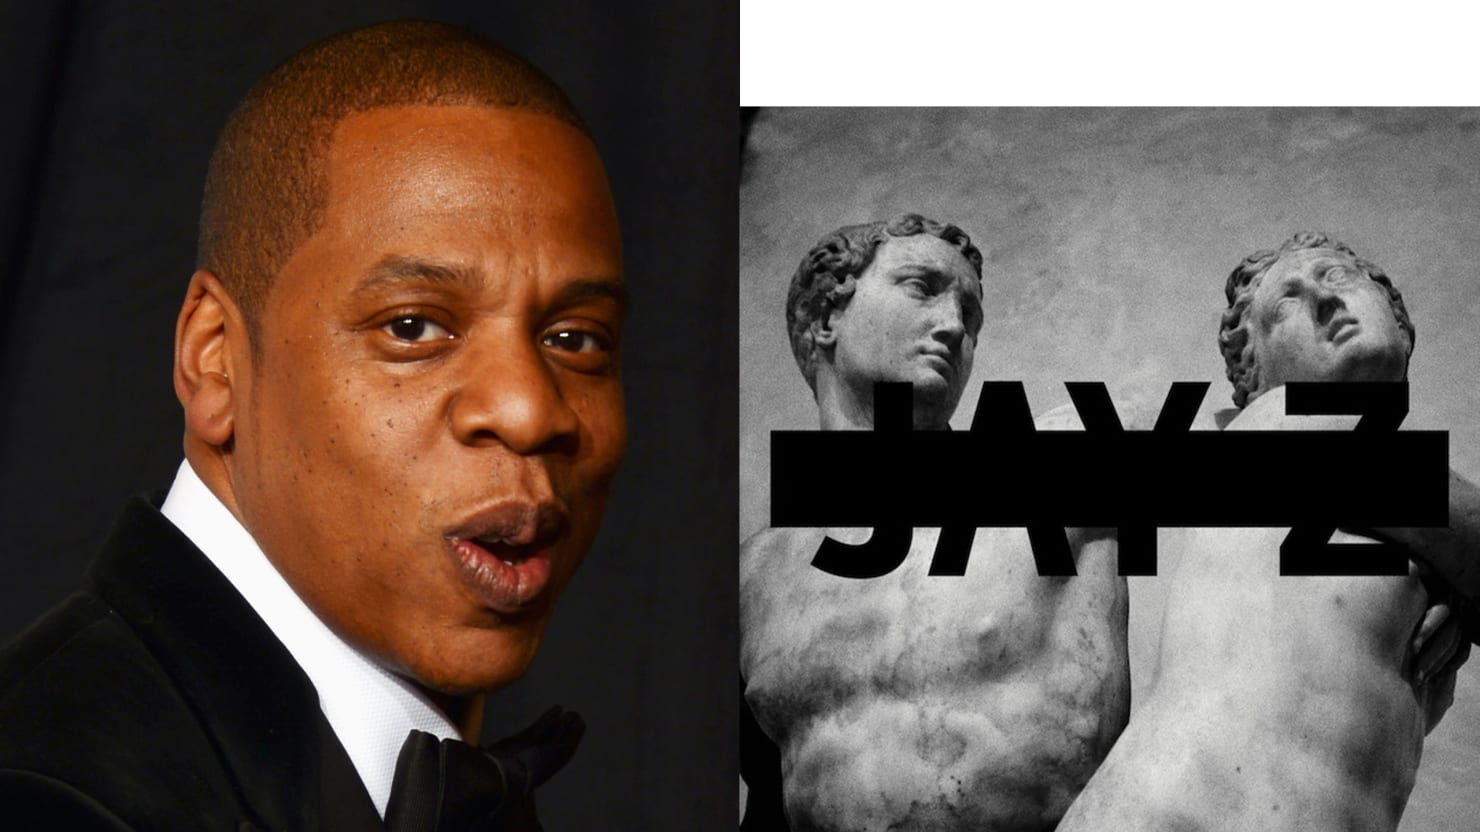 Jay zs new album magna carta holy grail is an overhyped mess malvernweather Image collections